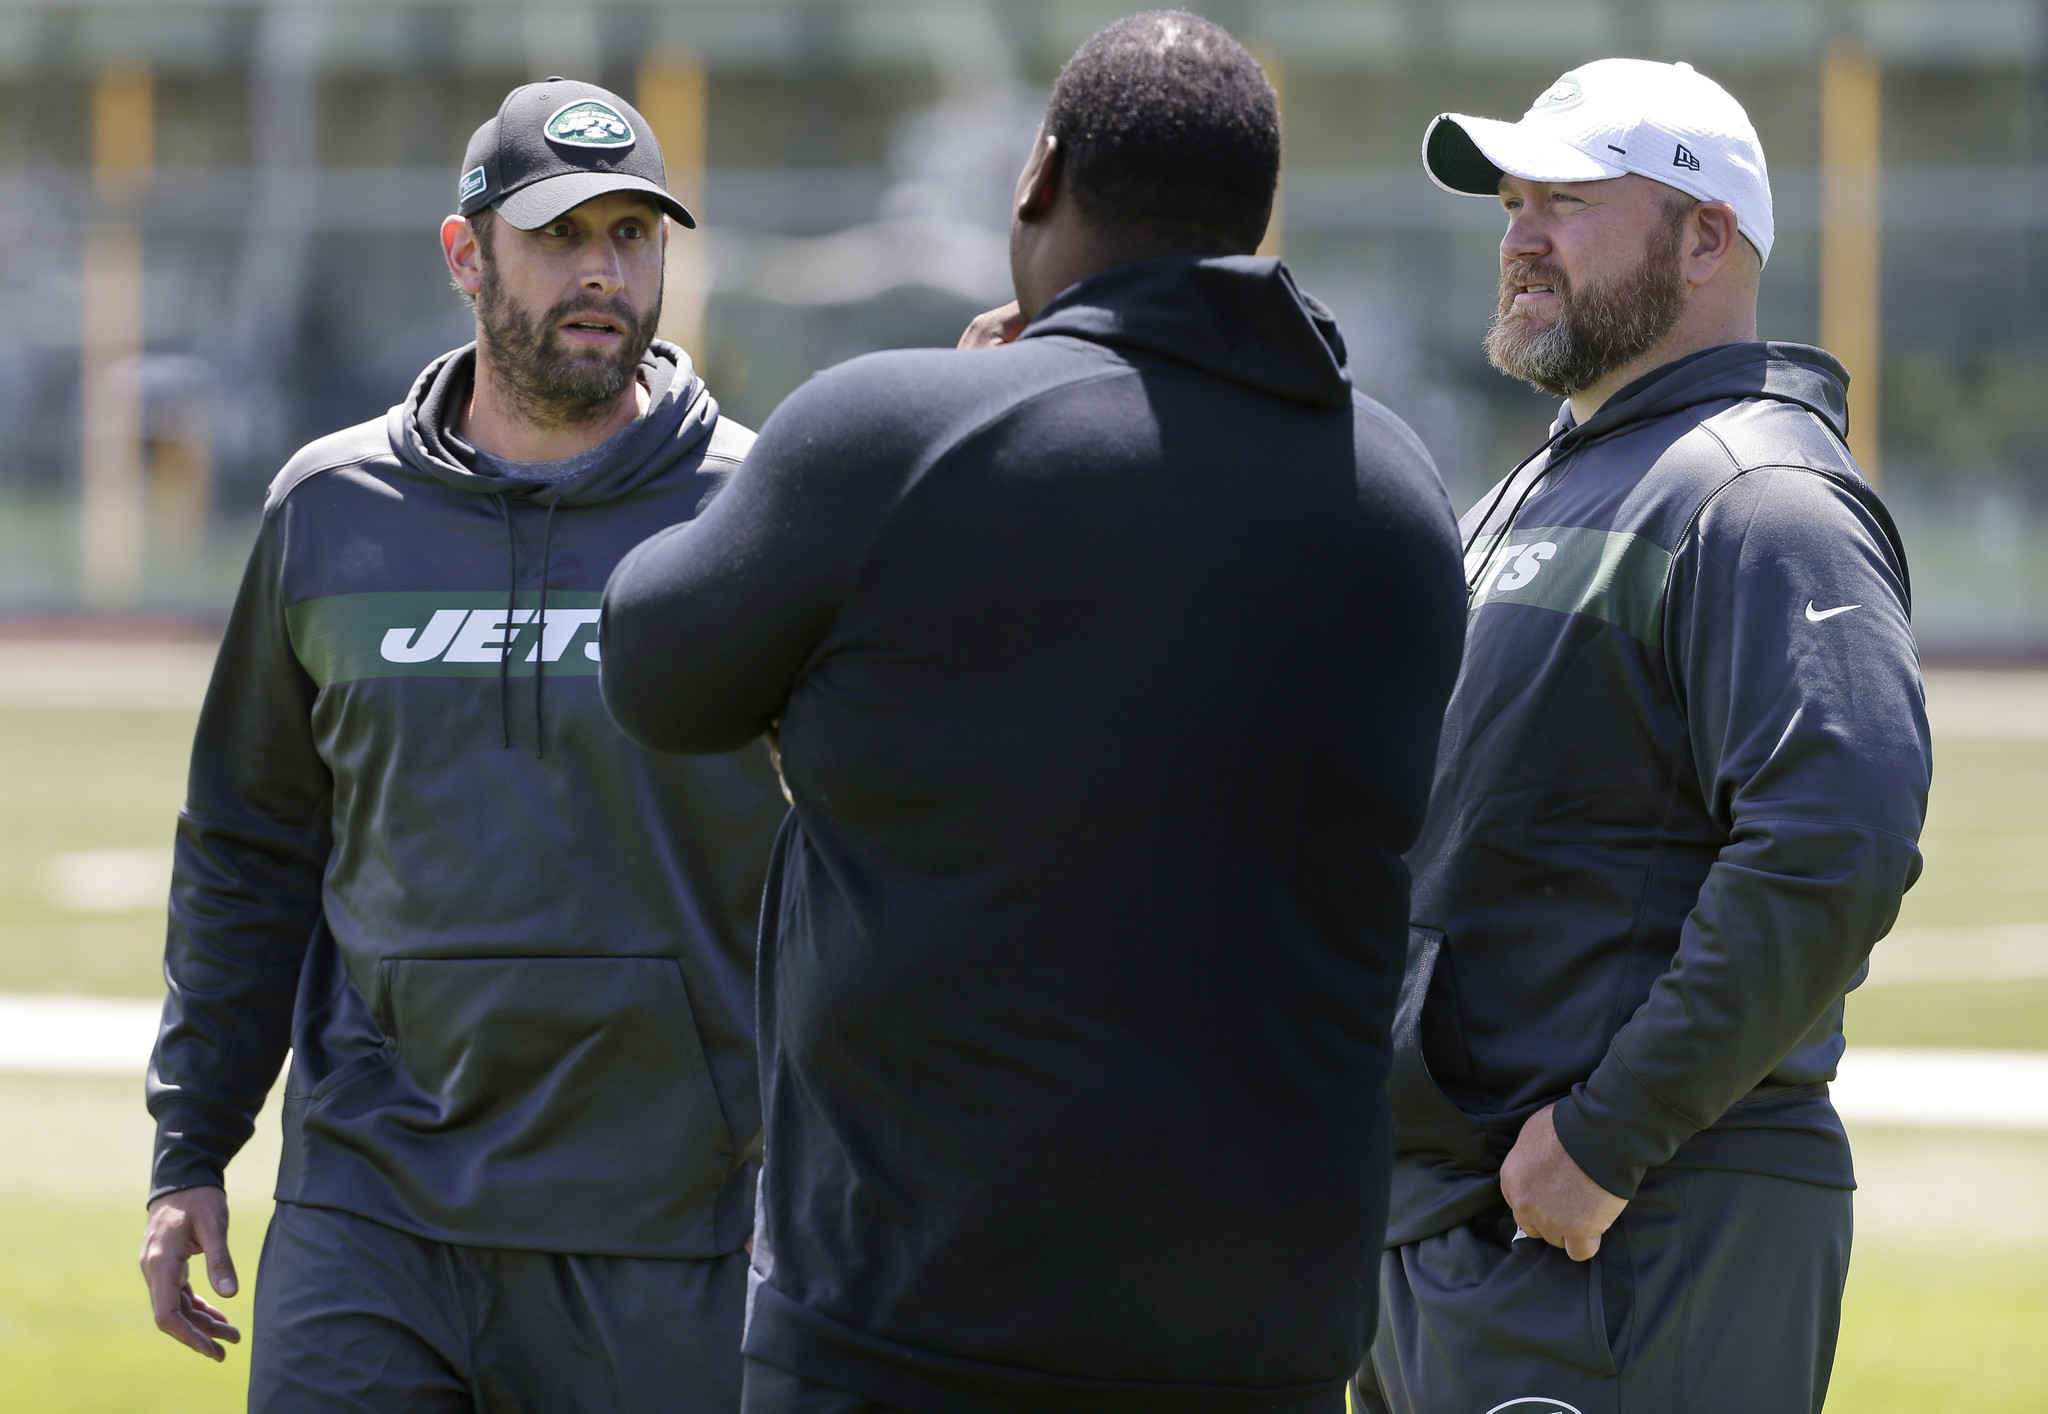 Jets Mailbag: Between Adam Gase and Joe Douglas, who's really in control of Gang Green?